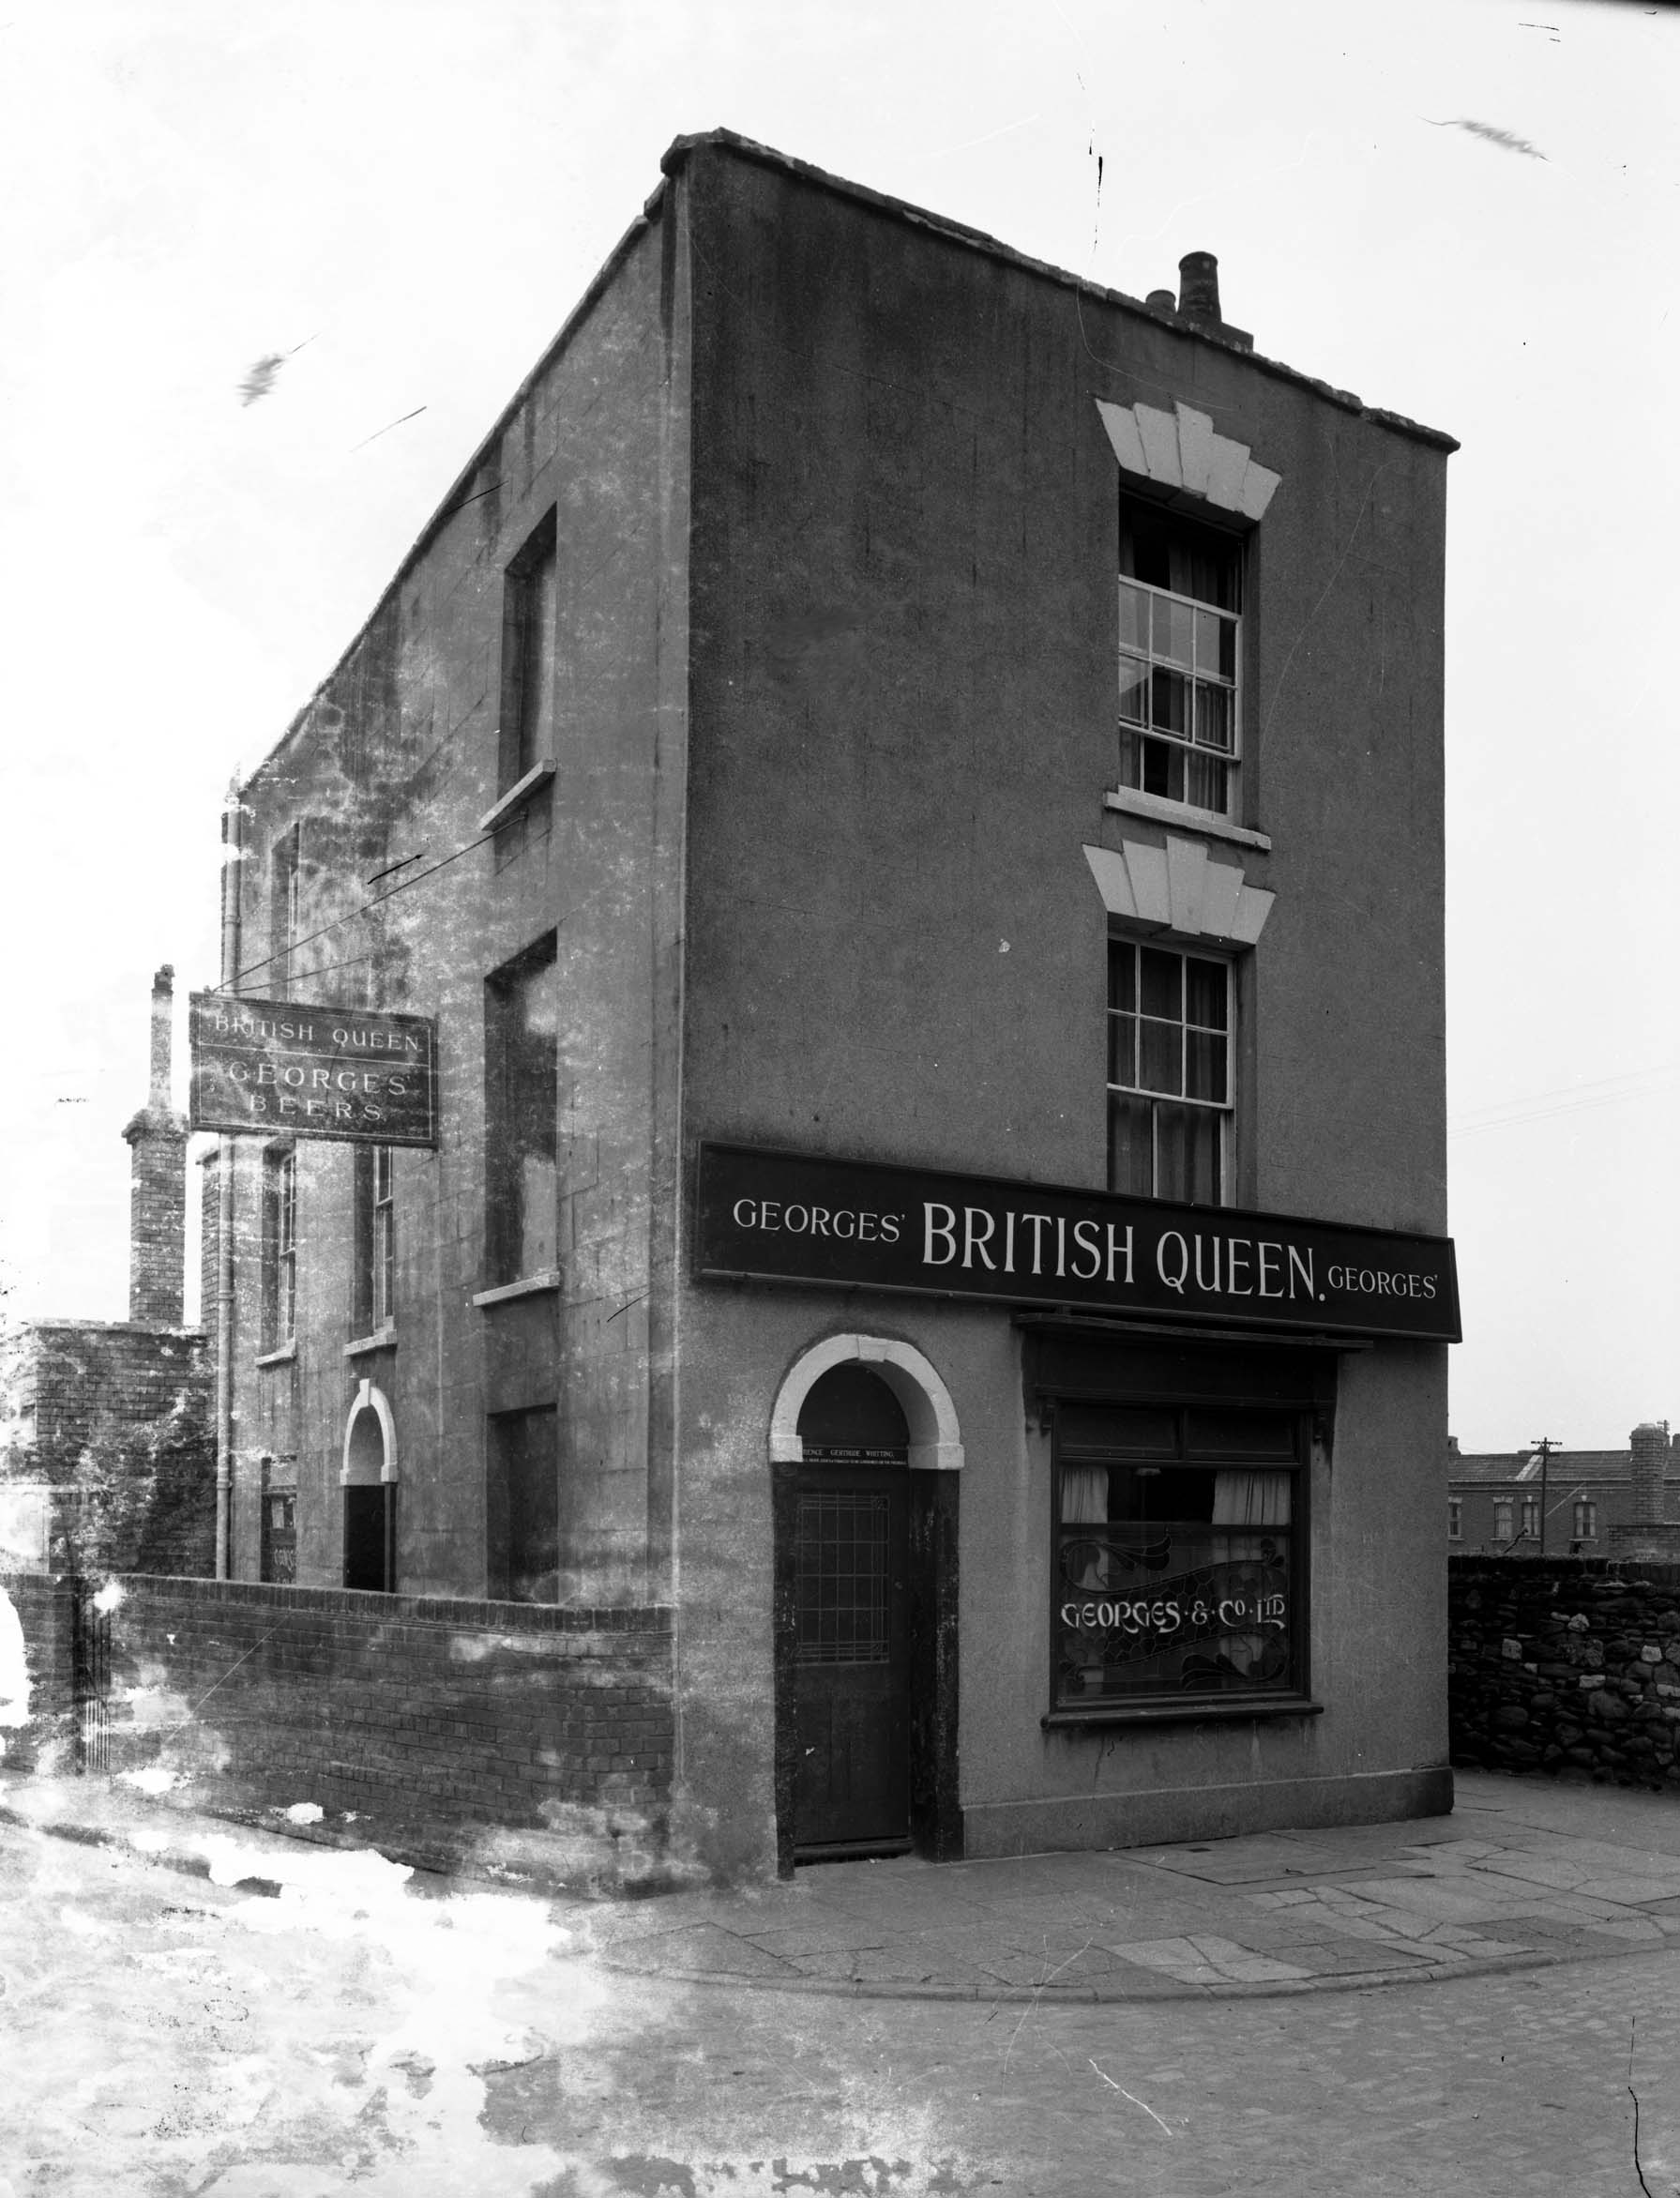 Small 3-storey Victorian detached building on a deserted street corner. Sign says British Queen - Georges Beers